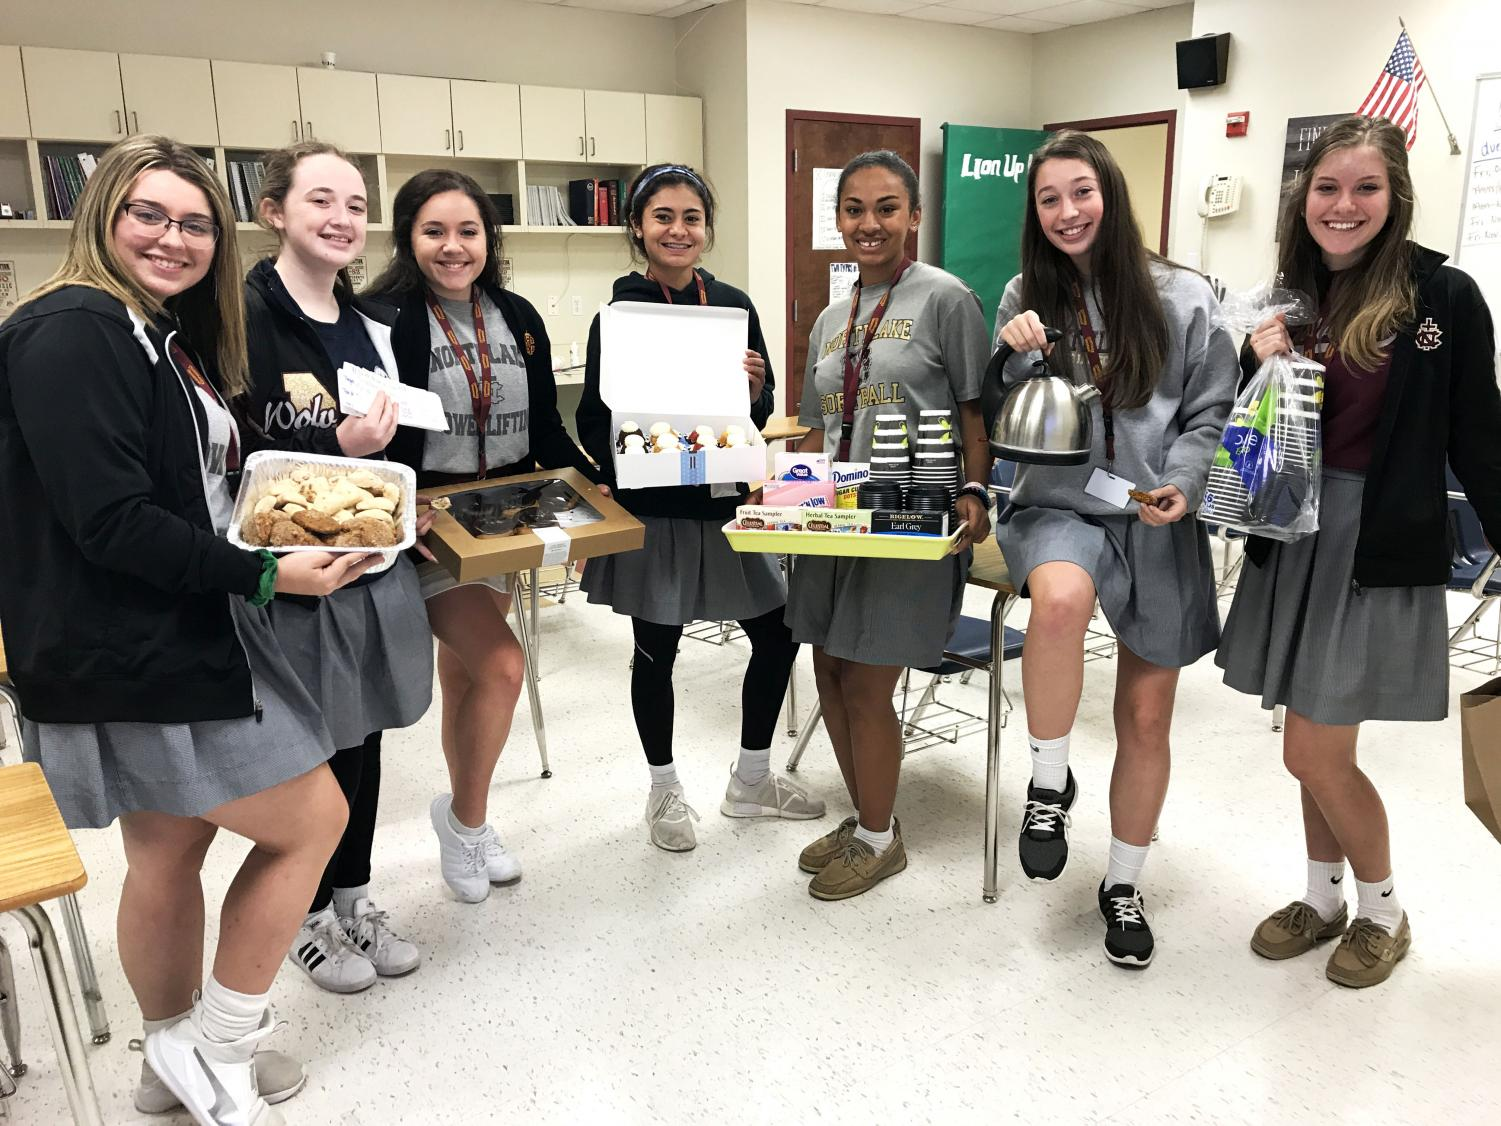 One sophomore girls Advisory Group baked treats and brought tea selections to faculty and teachers on campus as one service opportunity during Service Week. They are one of many groups who participated in Service Week through creative activities such as painting, cleaning, and more around campus.